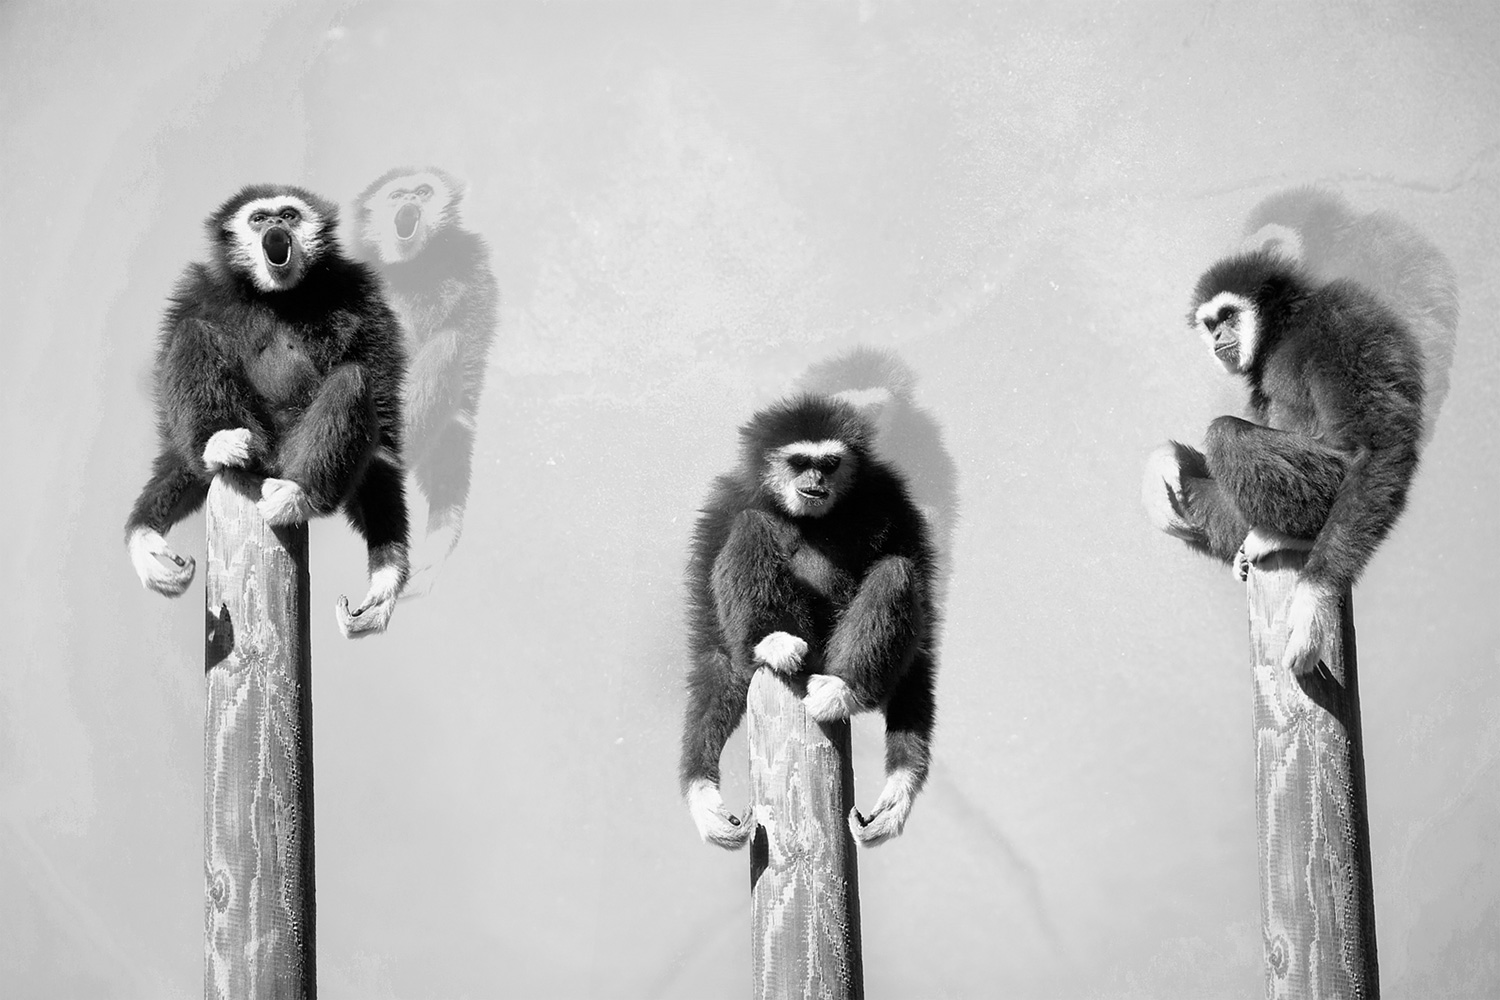 Three Gibbons on a Pole